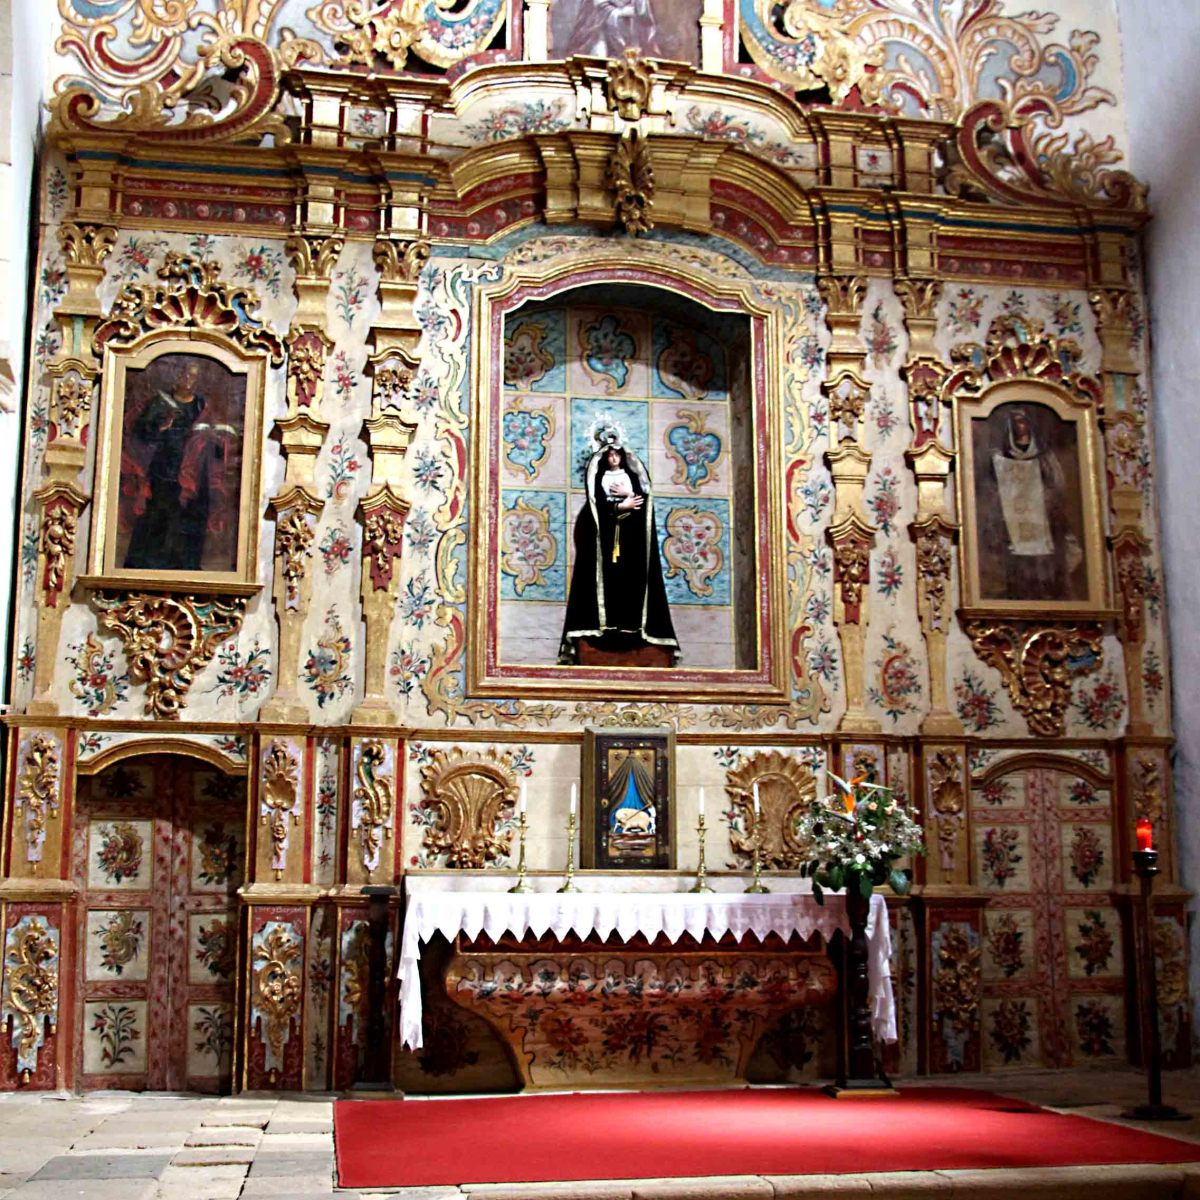 The ornate interior of the Church of Nuestra Senora de Regla in Pajara. Behind the altar is the figure of the Madonna. The main entrance is shown elsewhere on this page